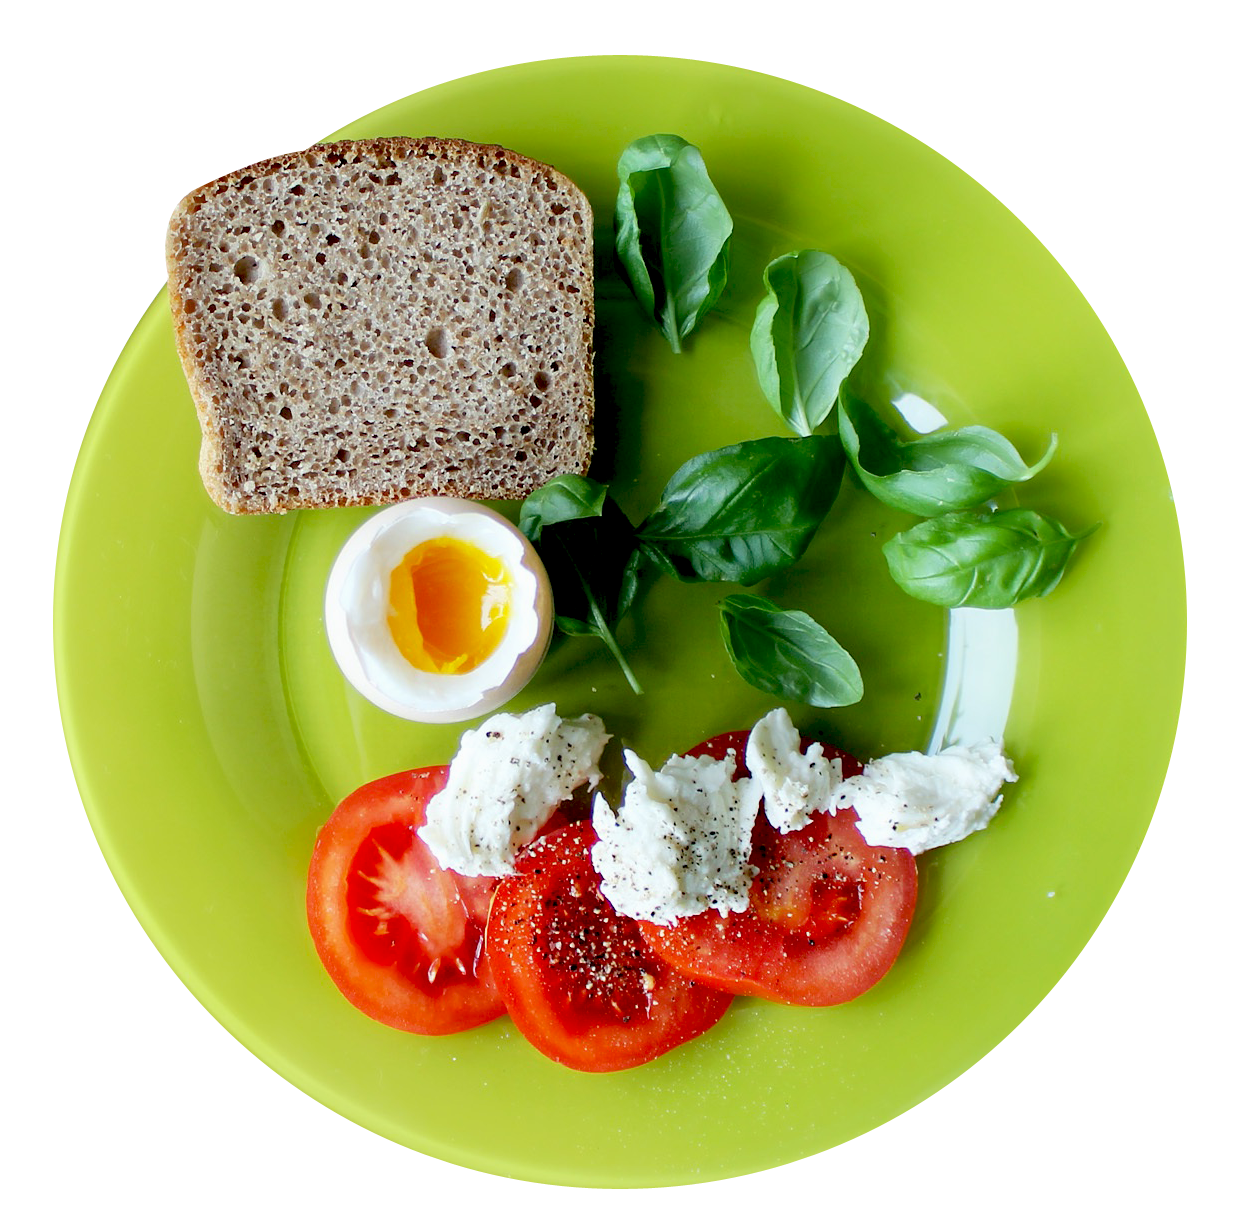 Food Plate Top View PNG Image - PurePNG | Free transparent ...